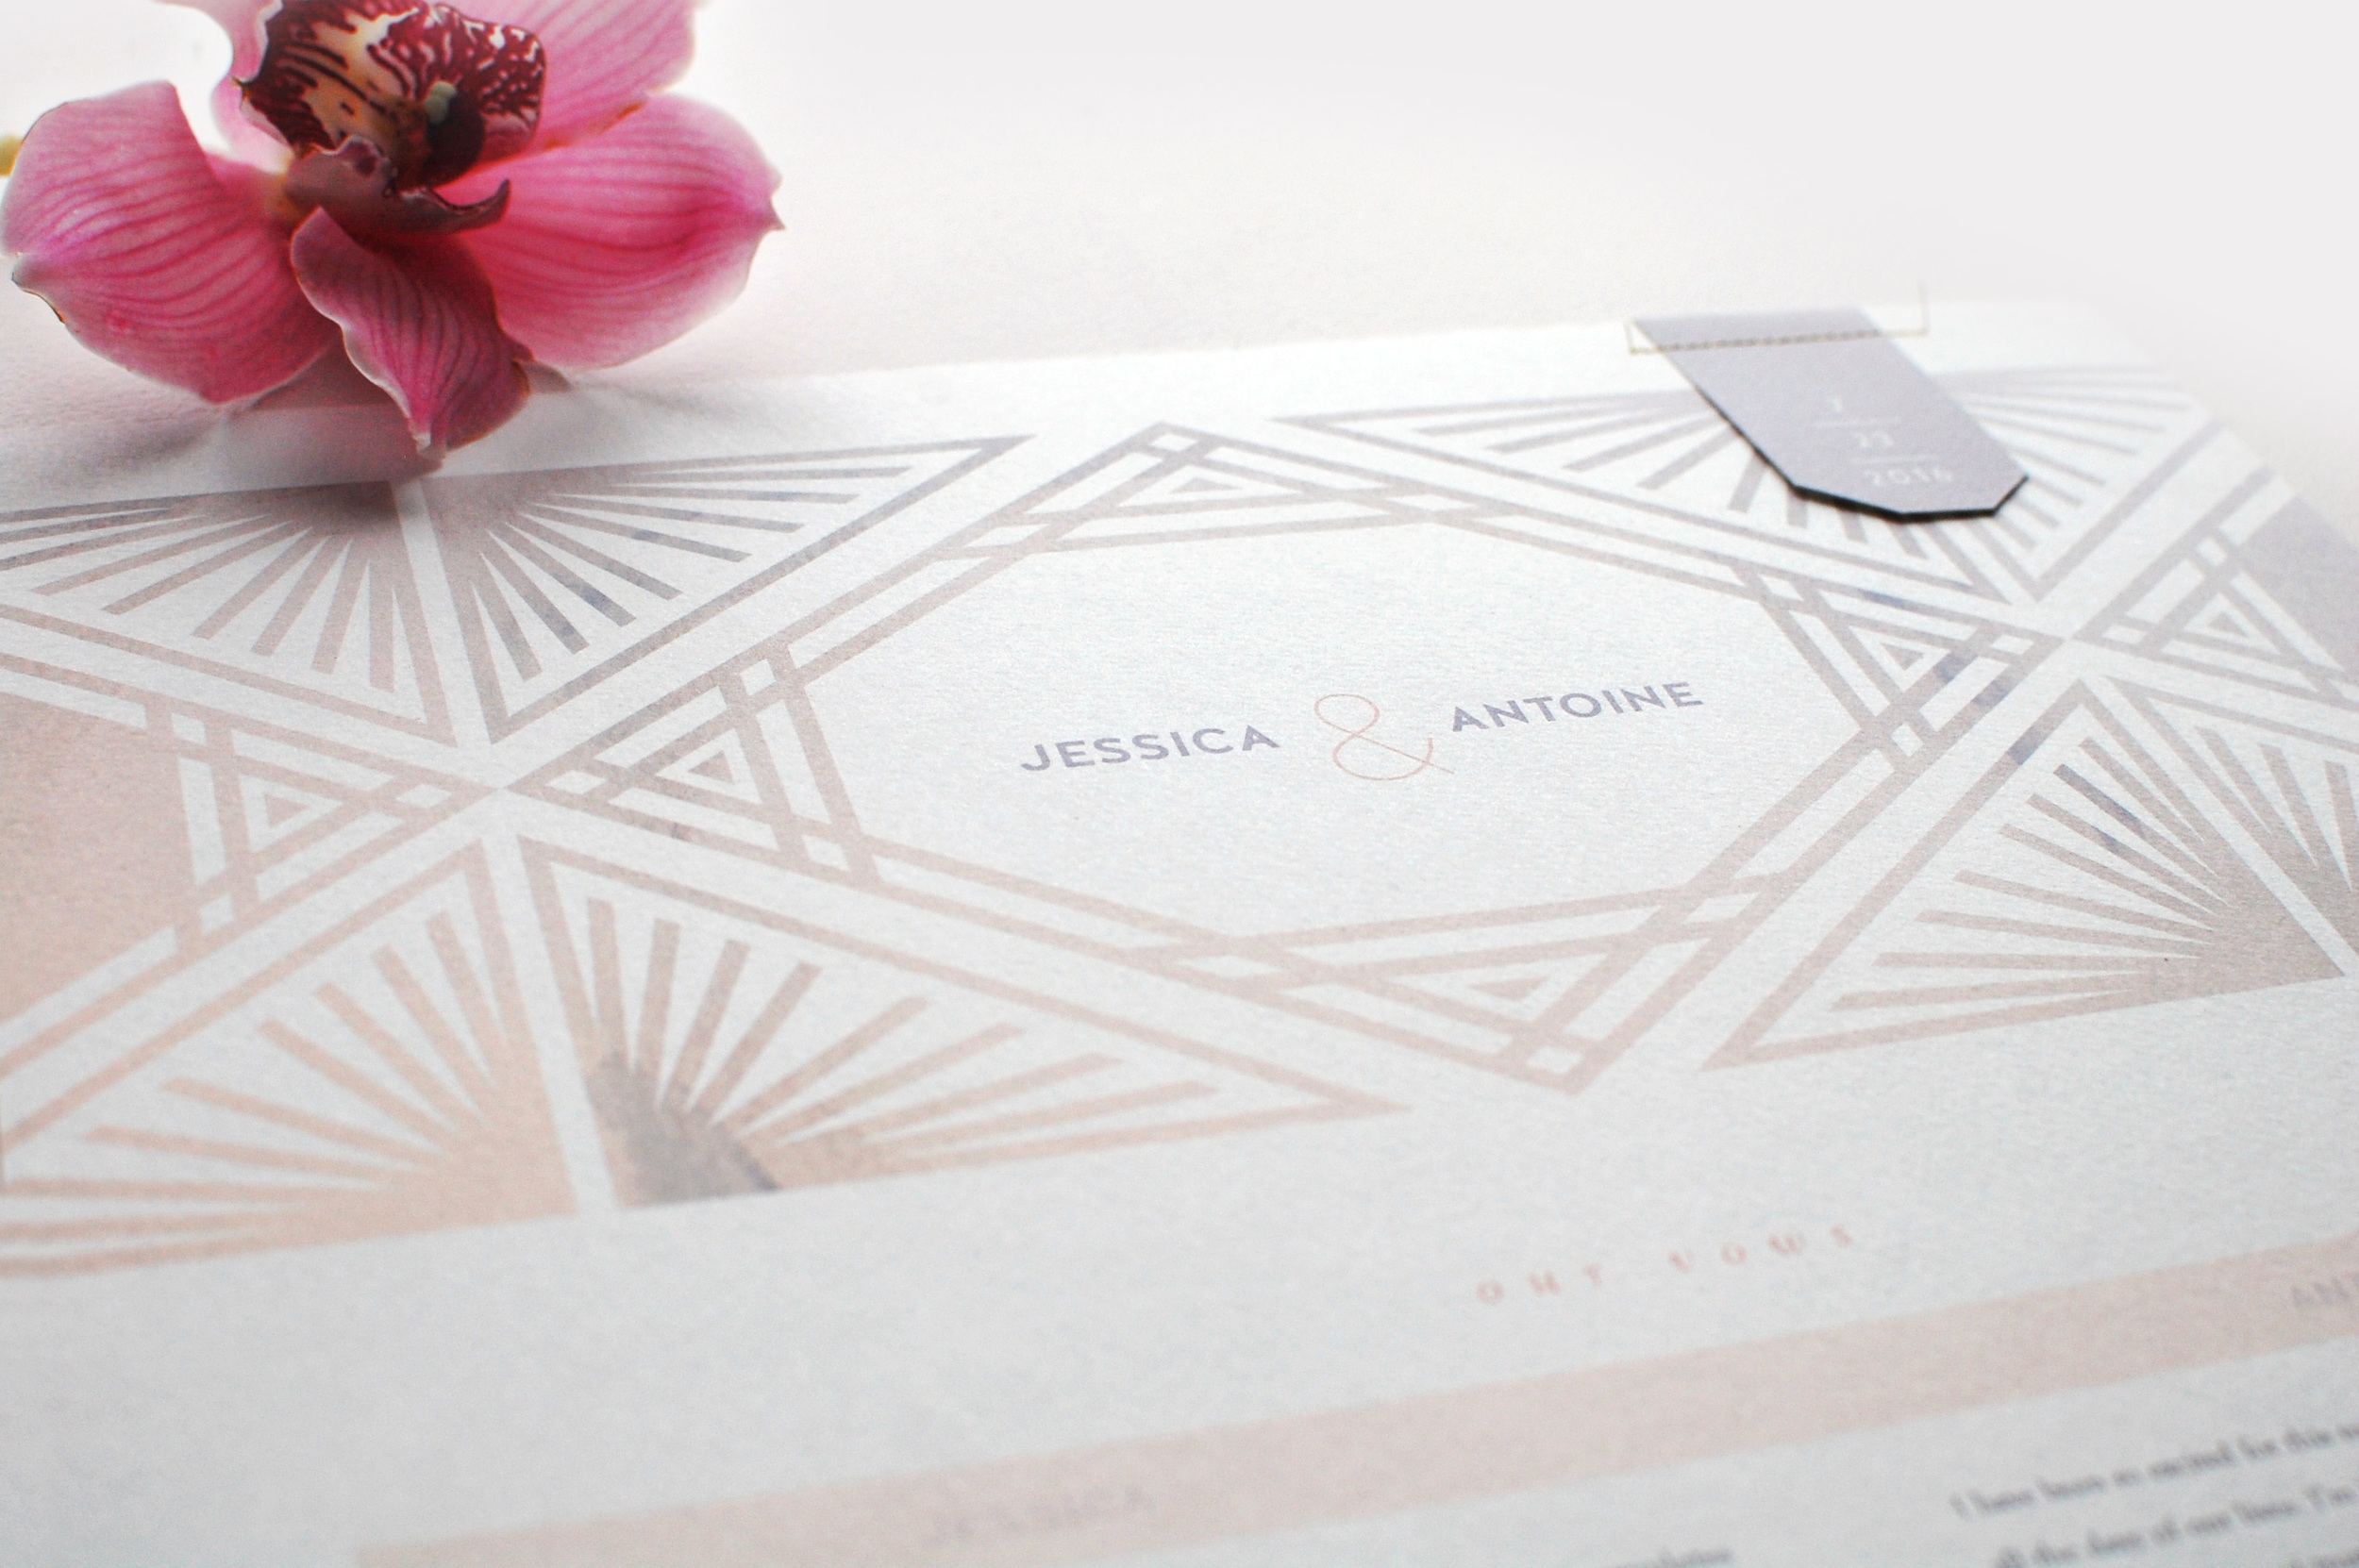 Wedding Vow Prints and Luxury Invitations by LaFabere.com